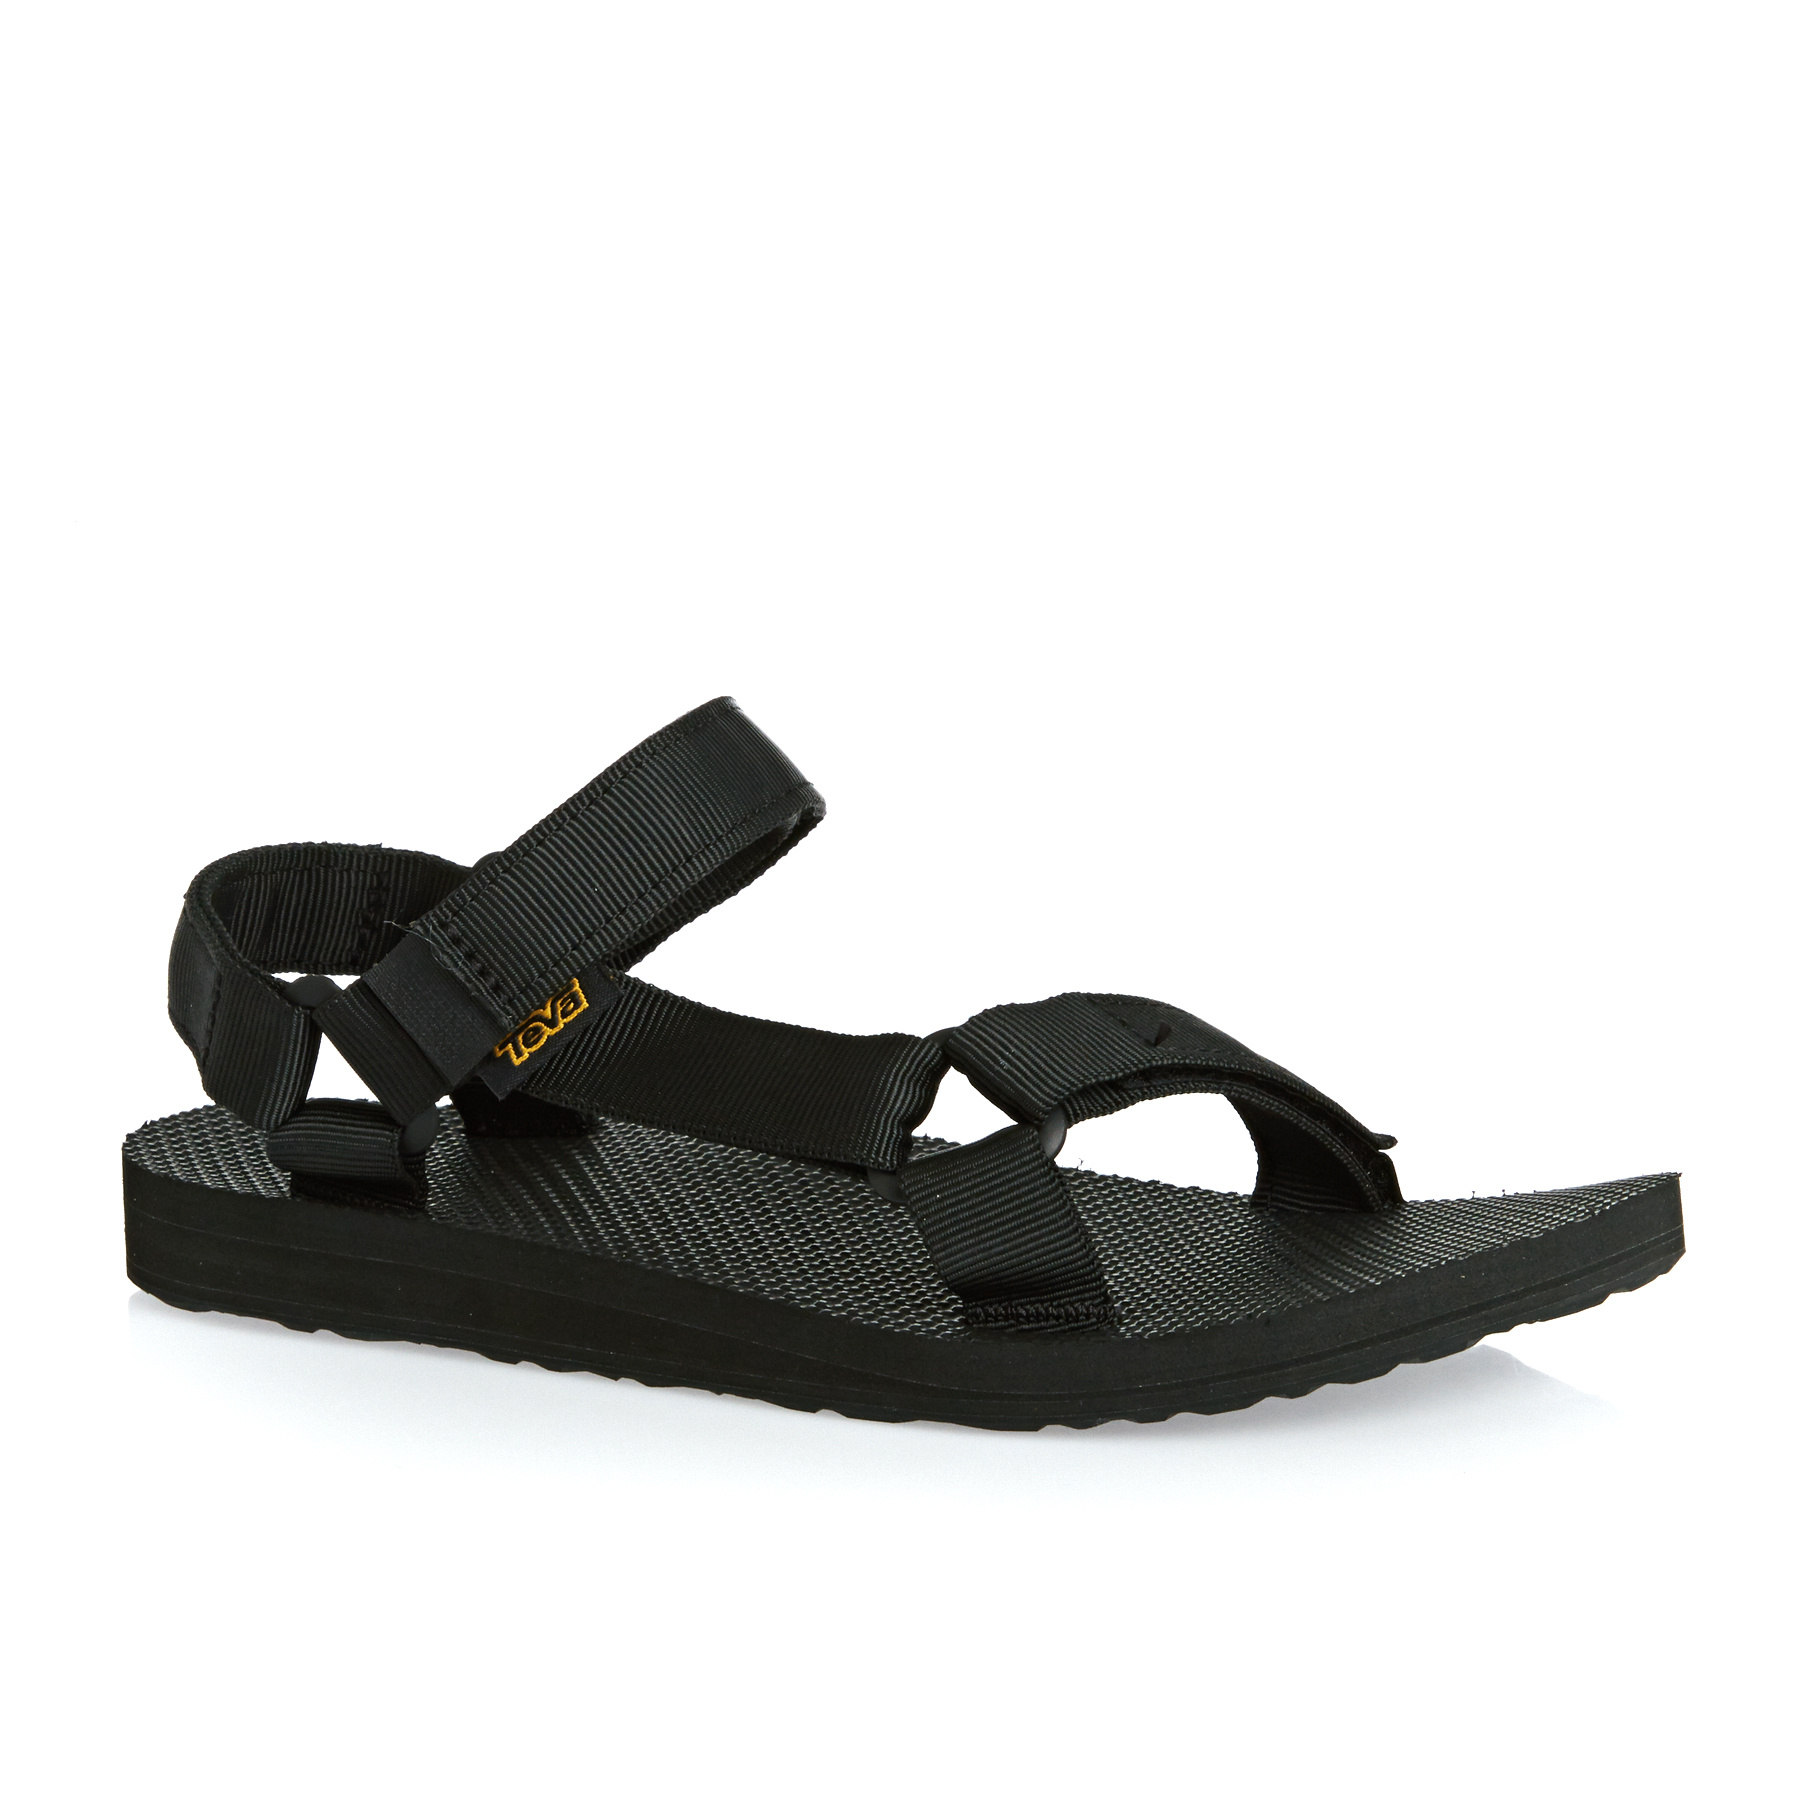 Teva Shoes and Sandals - Free Delivery